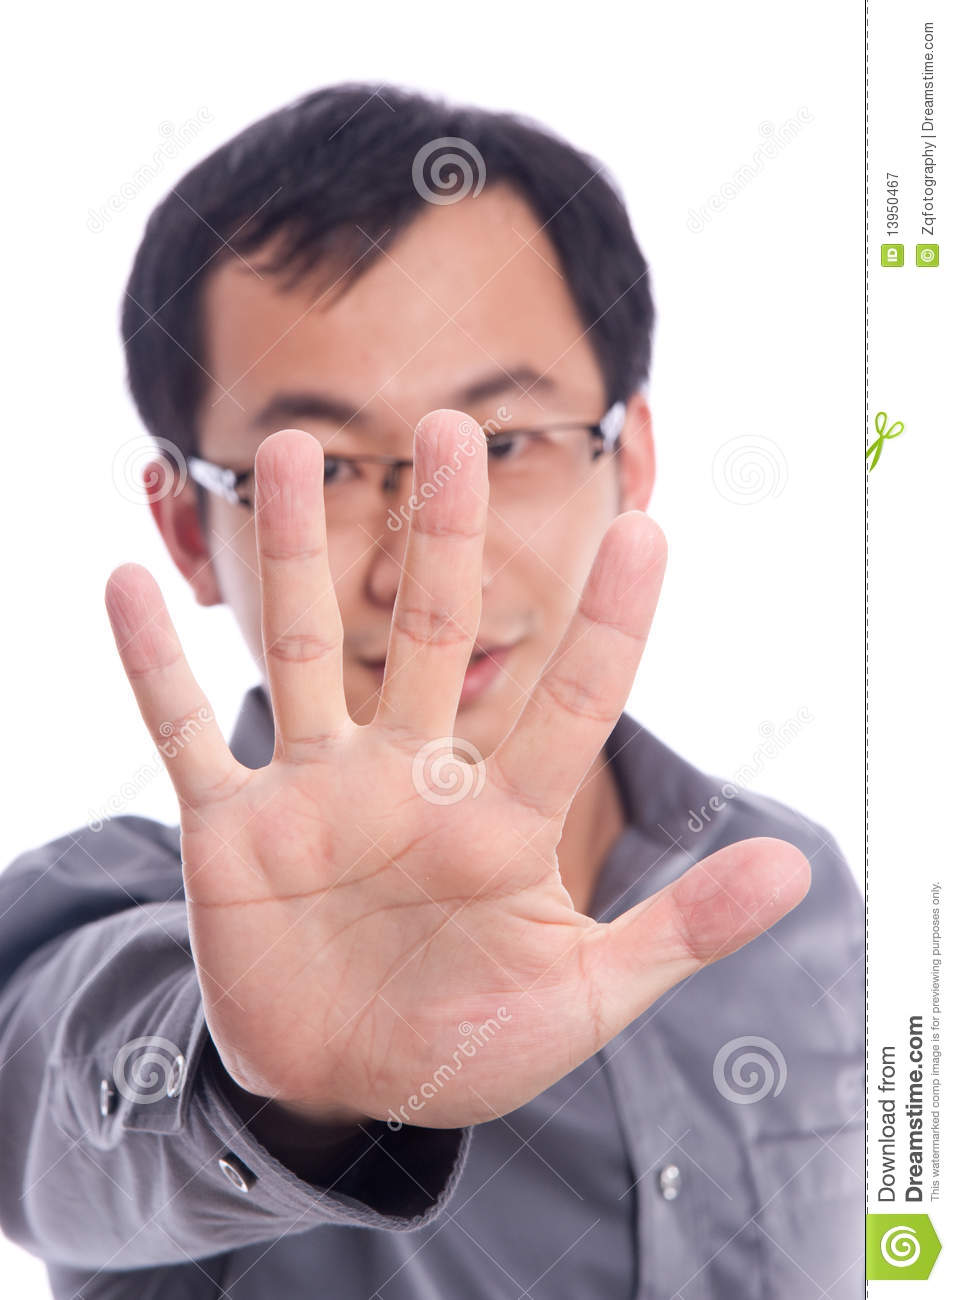 Fuck asian hand gestures name